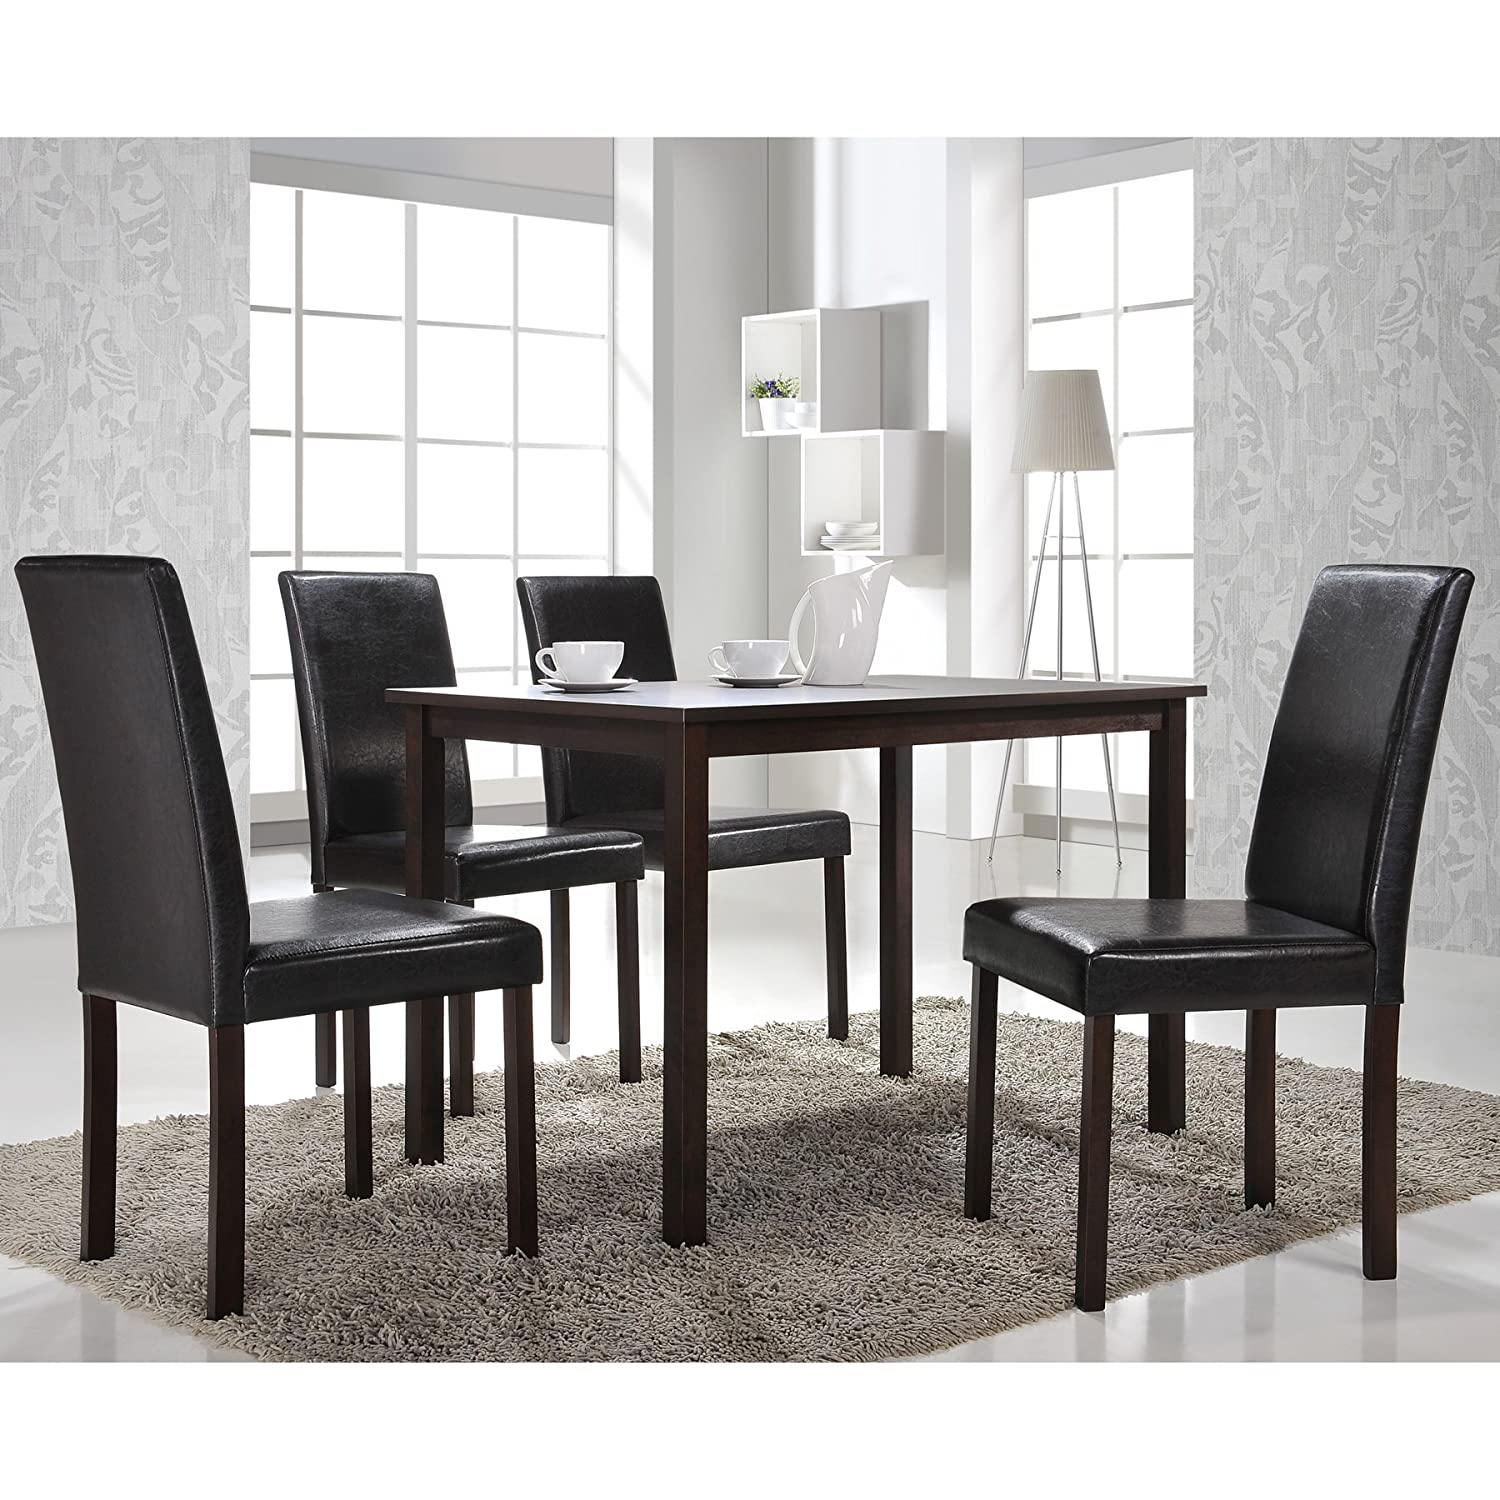 Amazon Baxton Studio 5 Piece Andrew Modern Dining Set